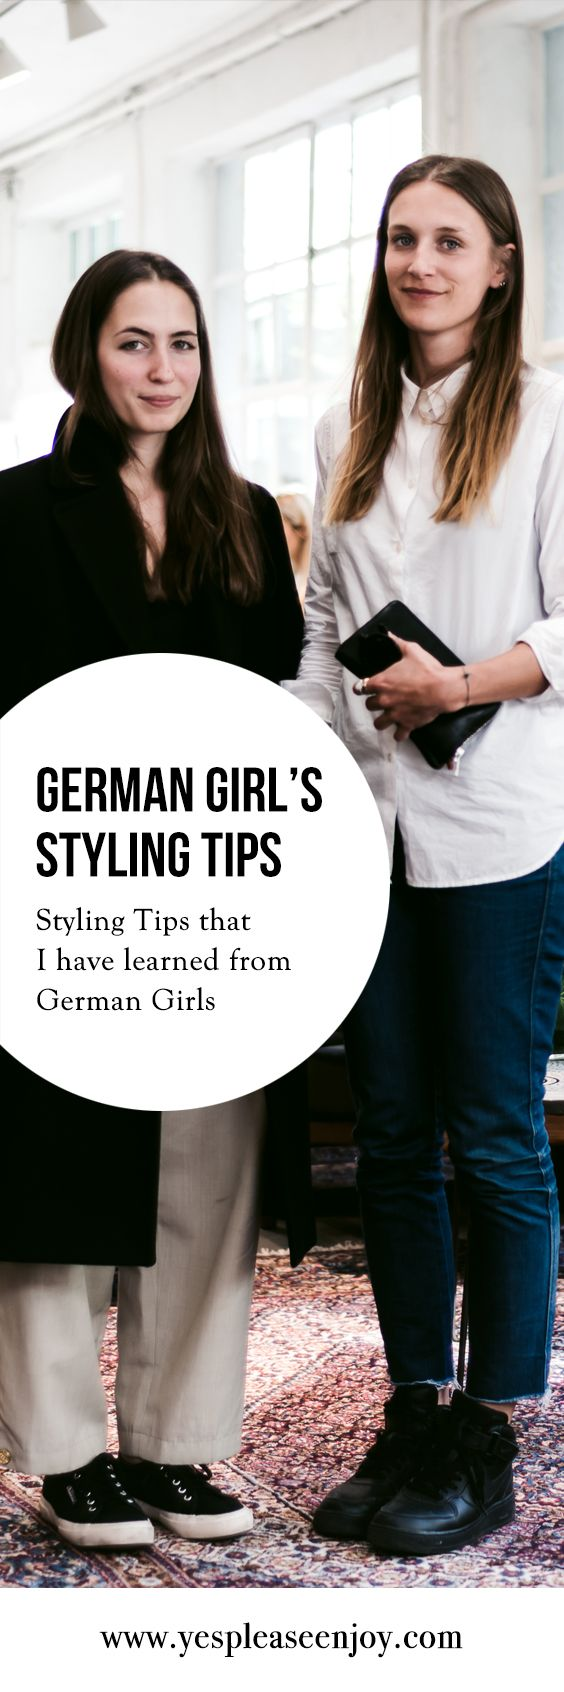 Some useful styling tips that I have learned from German Girls. the story and the images are ll in the blog post.